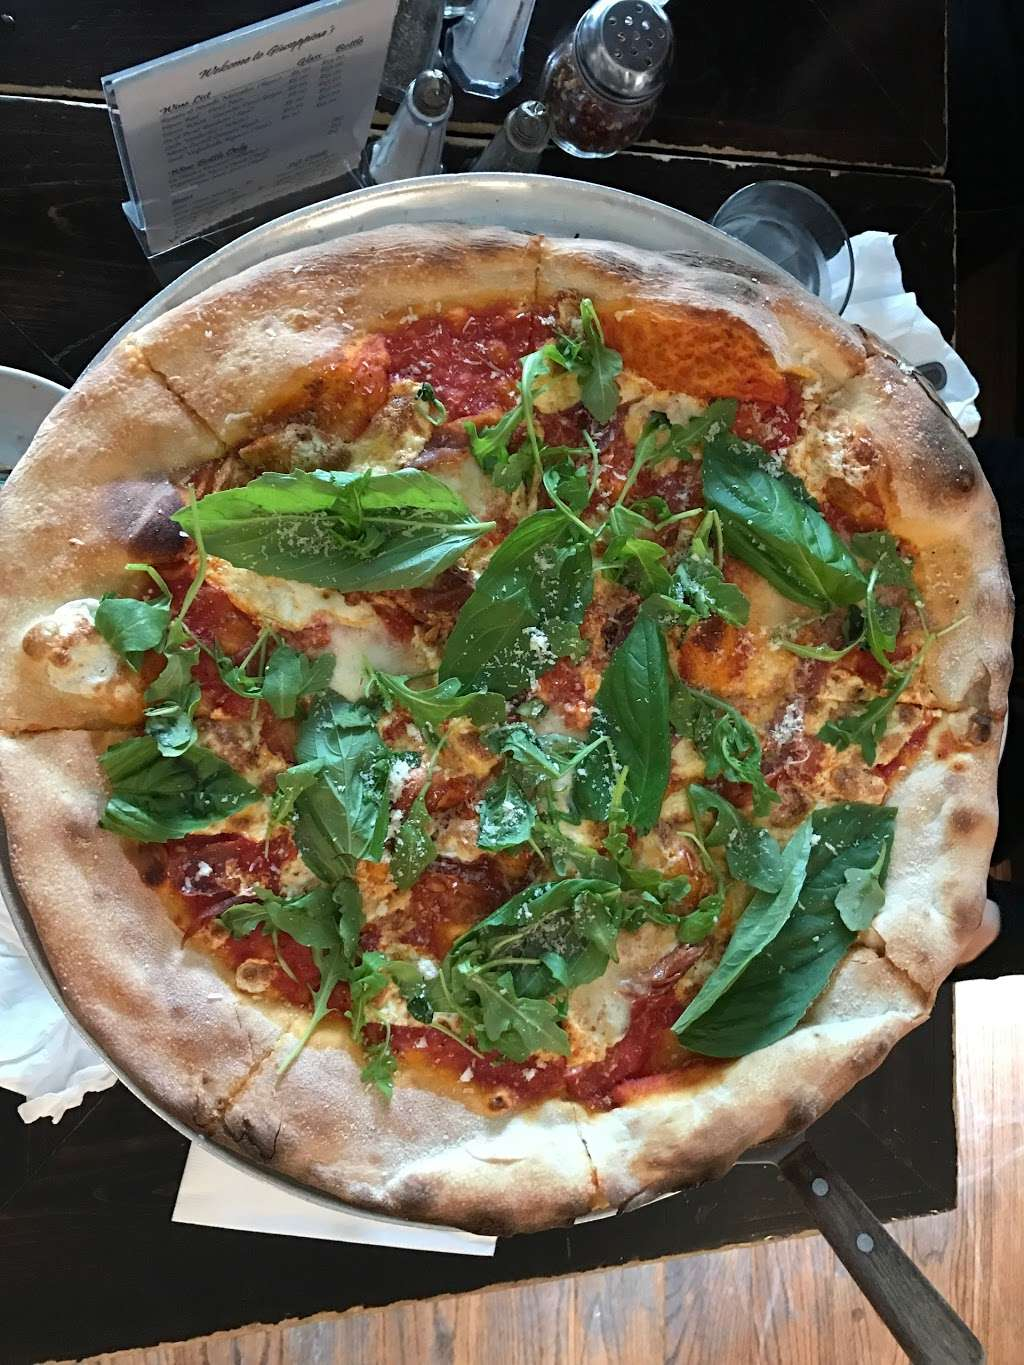 Giuseppinas Brick Oven Pizza - meal takeaway  | Photo 9 of 10 | Address: 691 6th Ave, Brooklyn, NY 11215, USA | Phone: (718) 499-5052